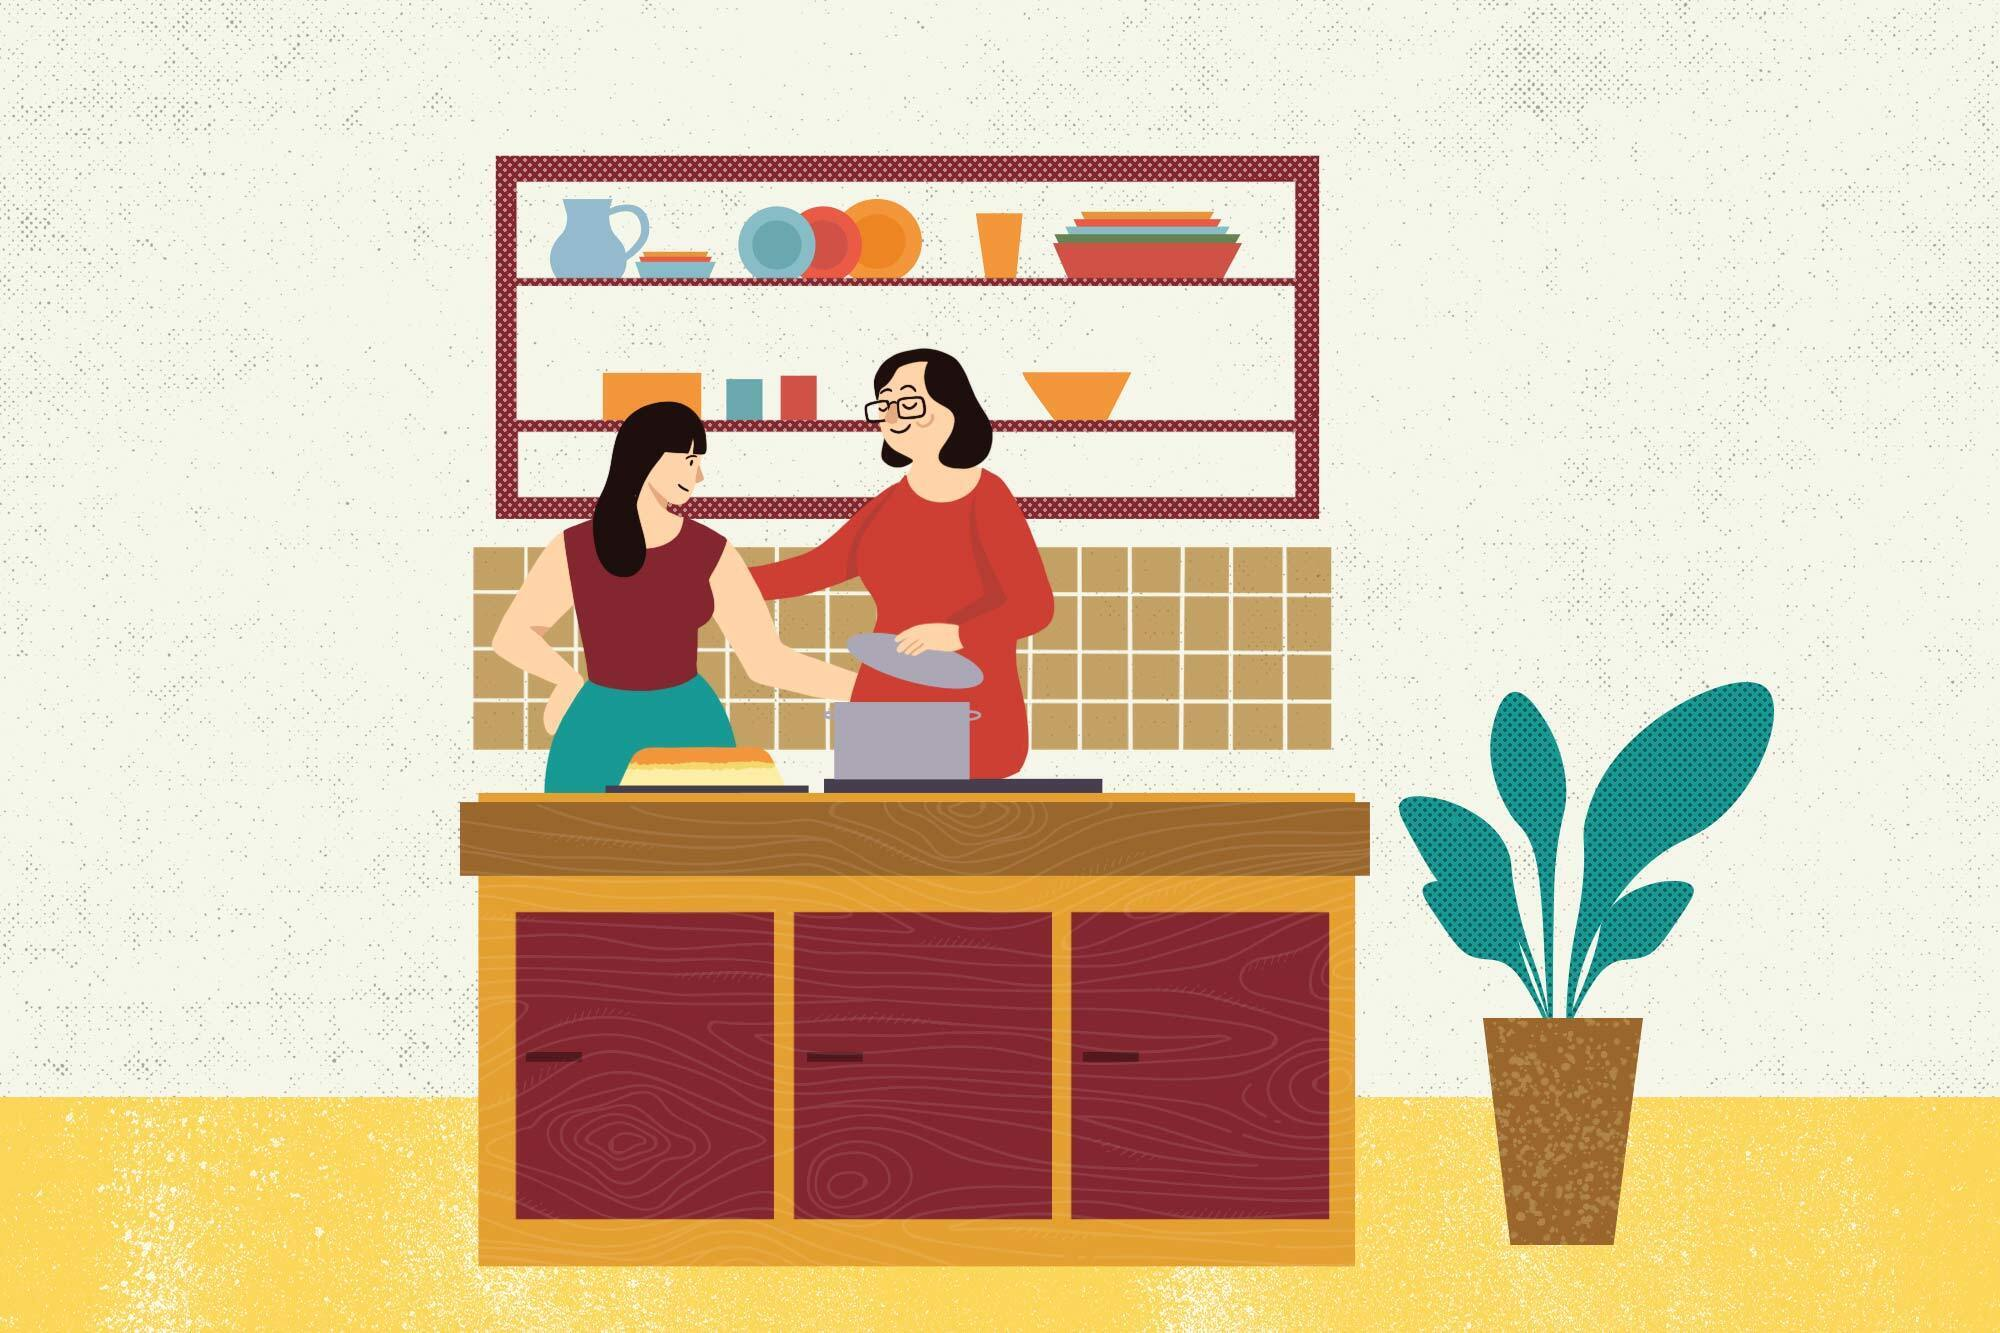 illustration of young woman (me) cooking with her/my grandmother and there is tahdig on the counter